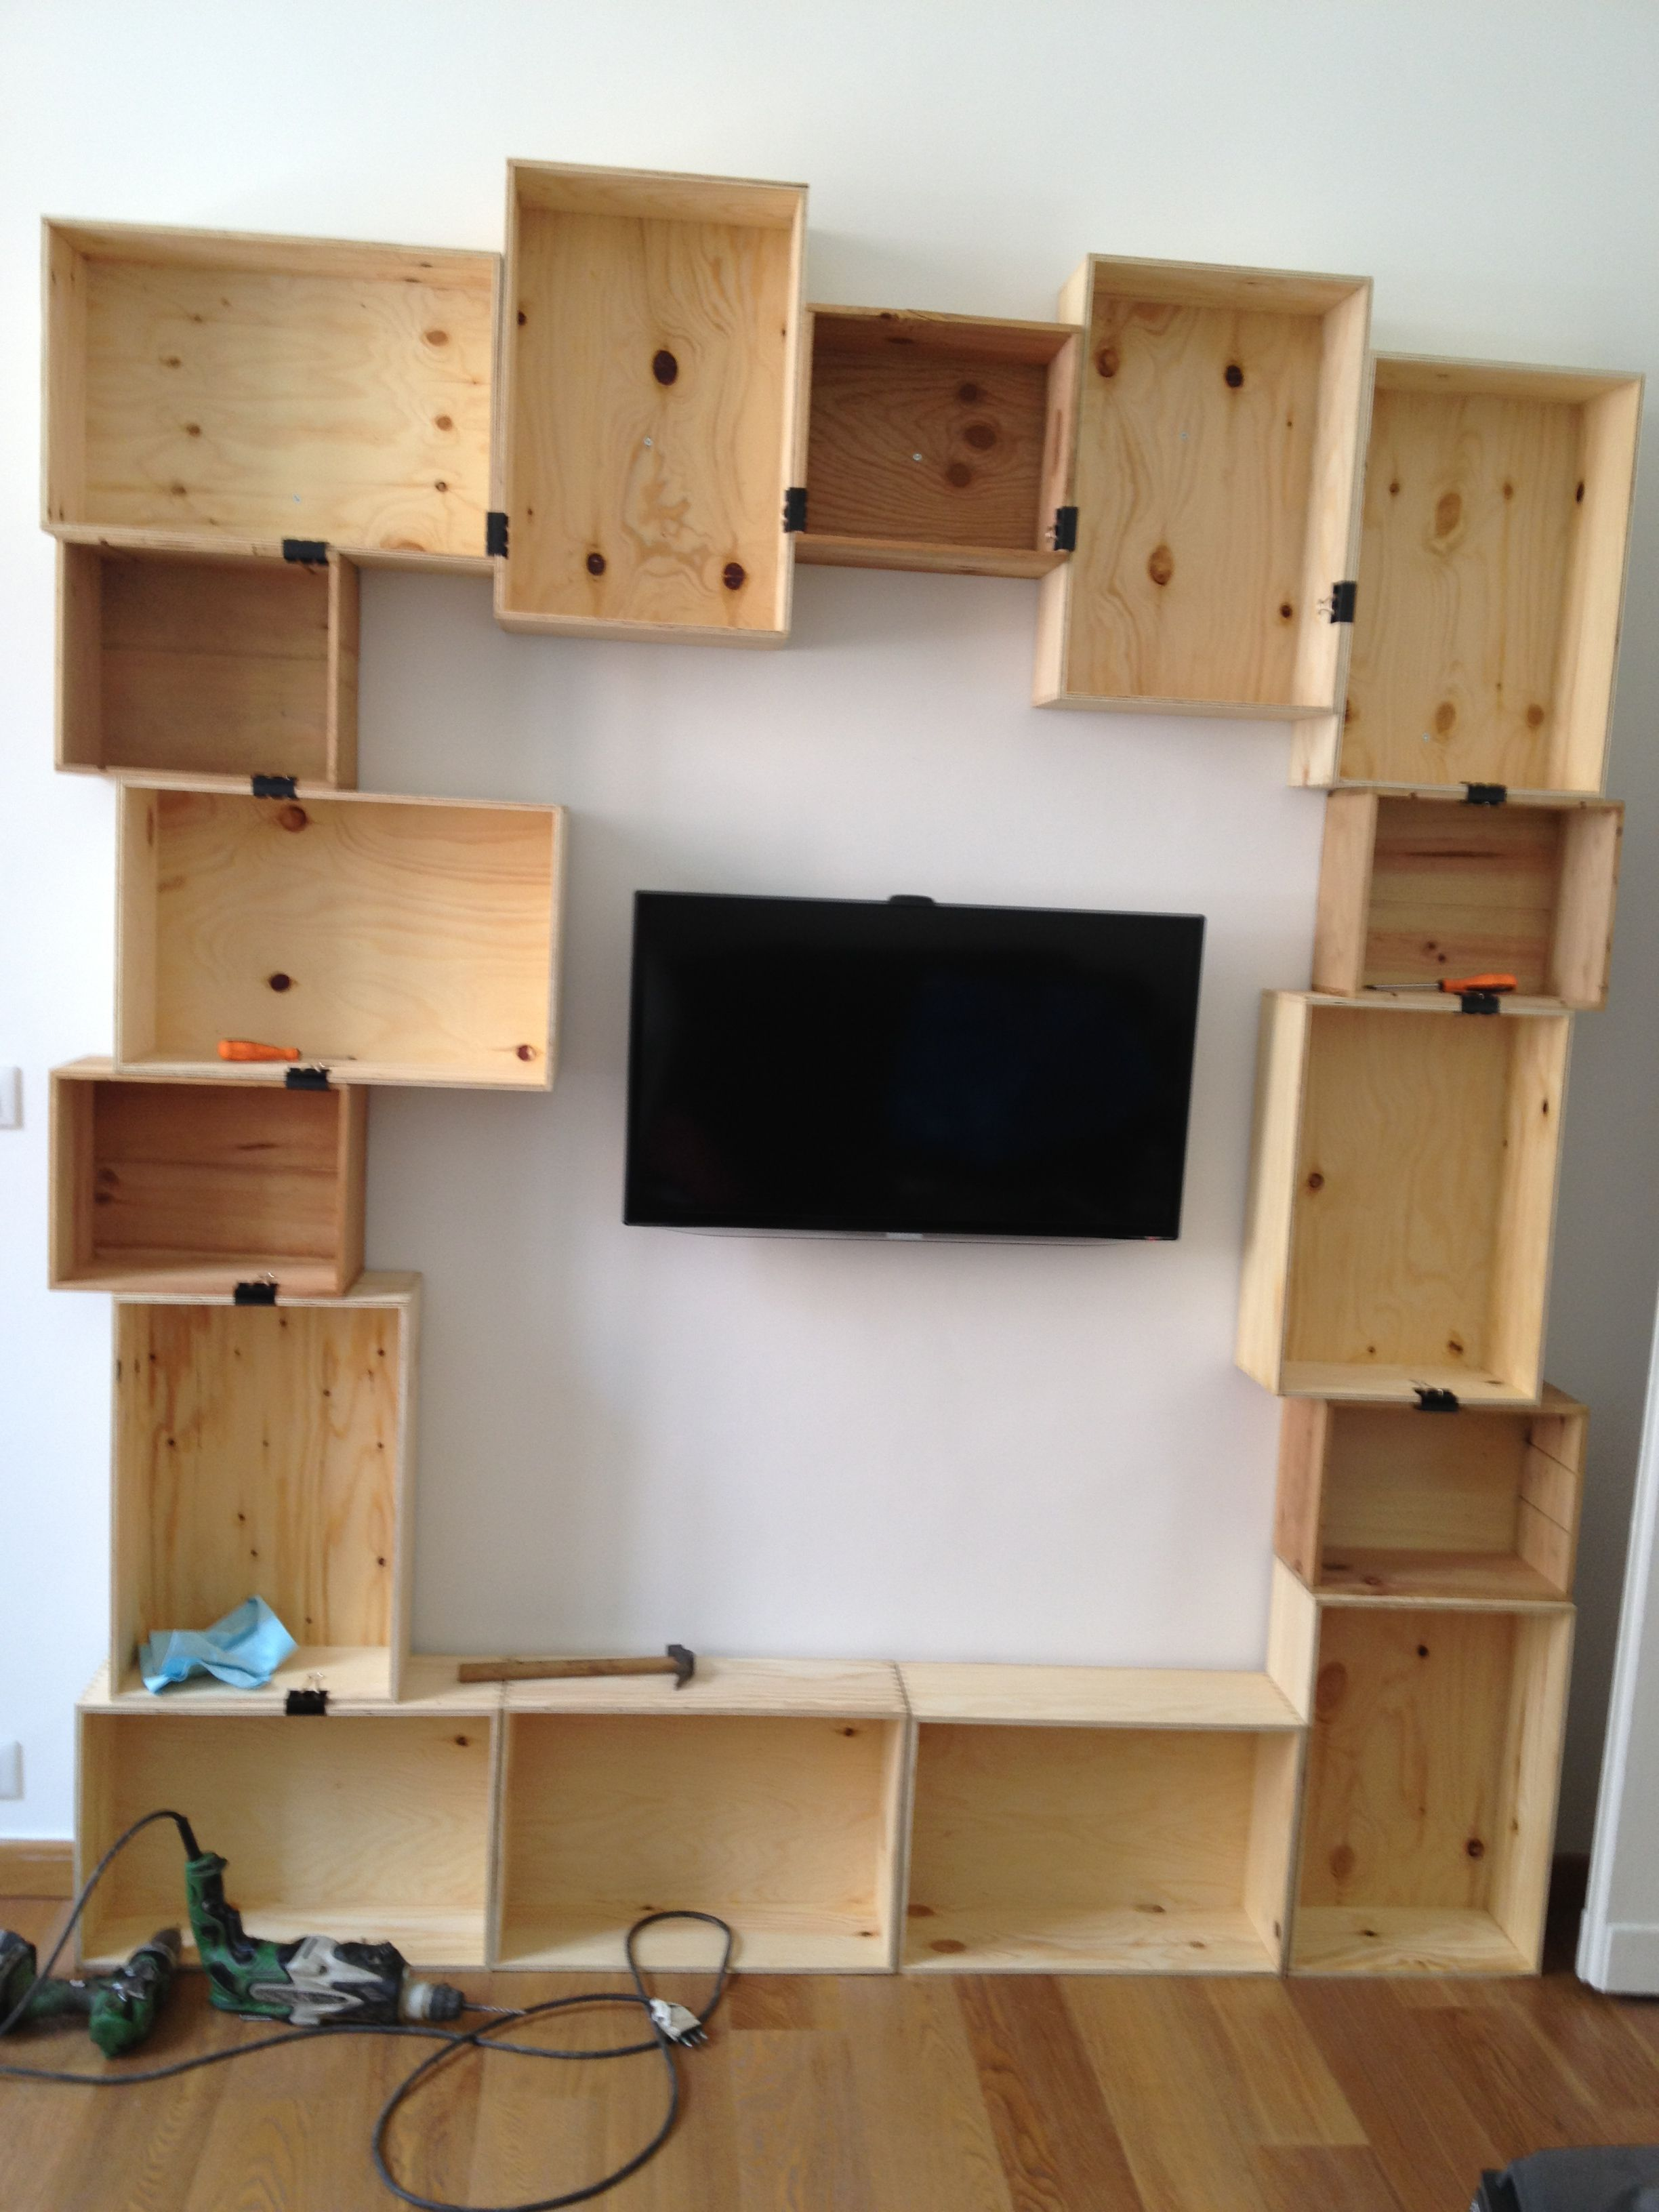 DIY Craft Wine Boxes Bookshelf